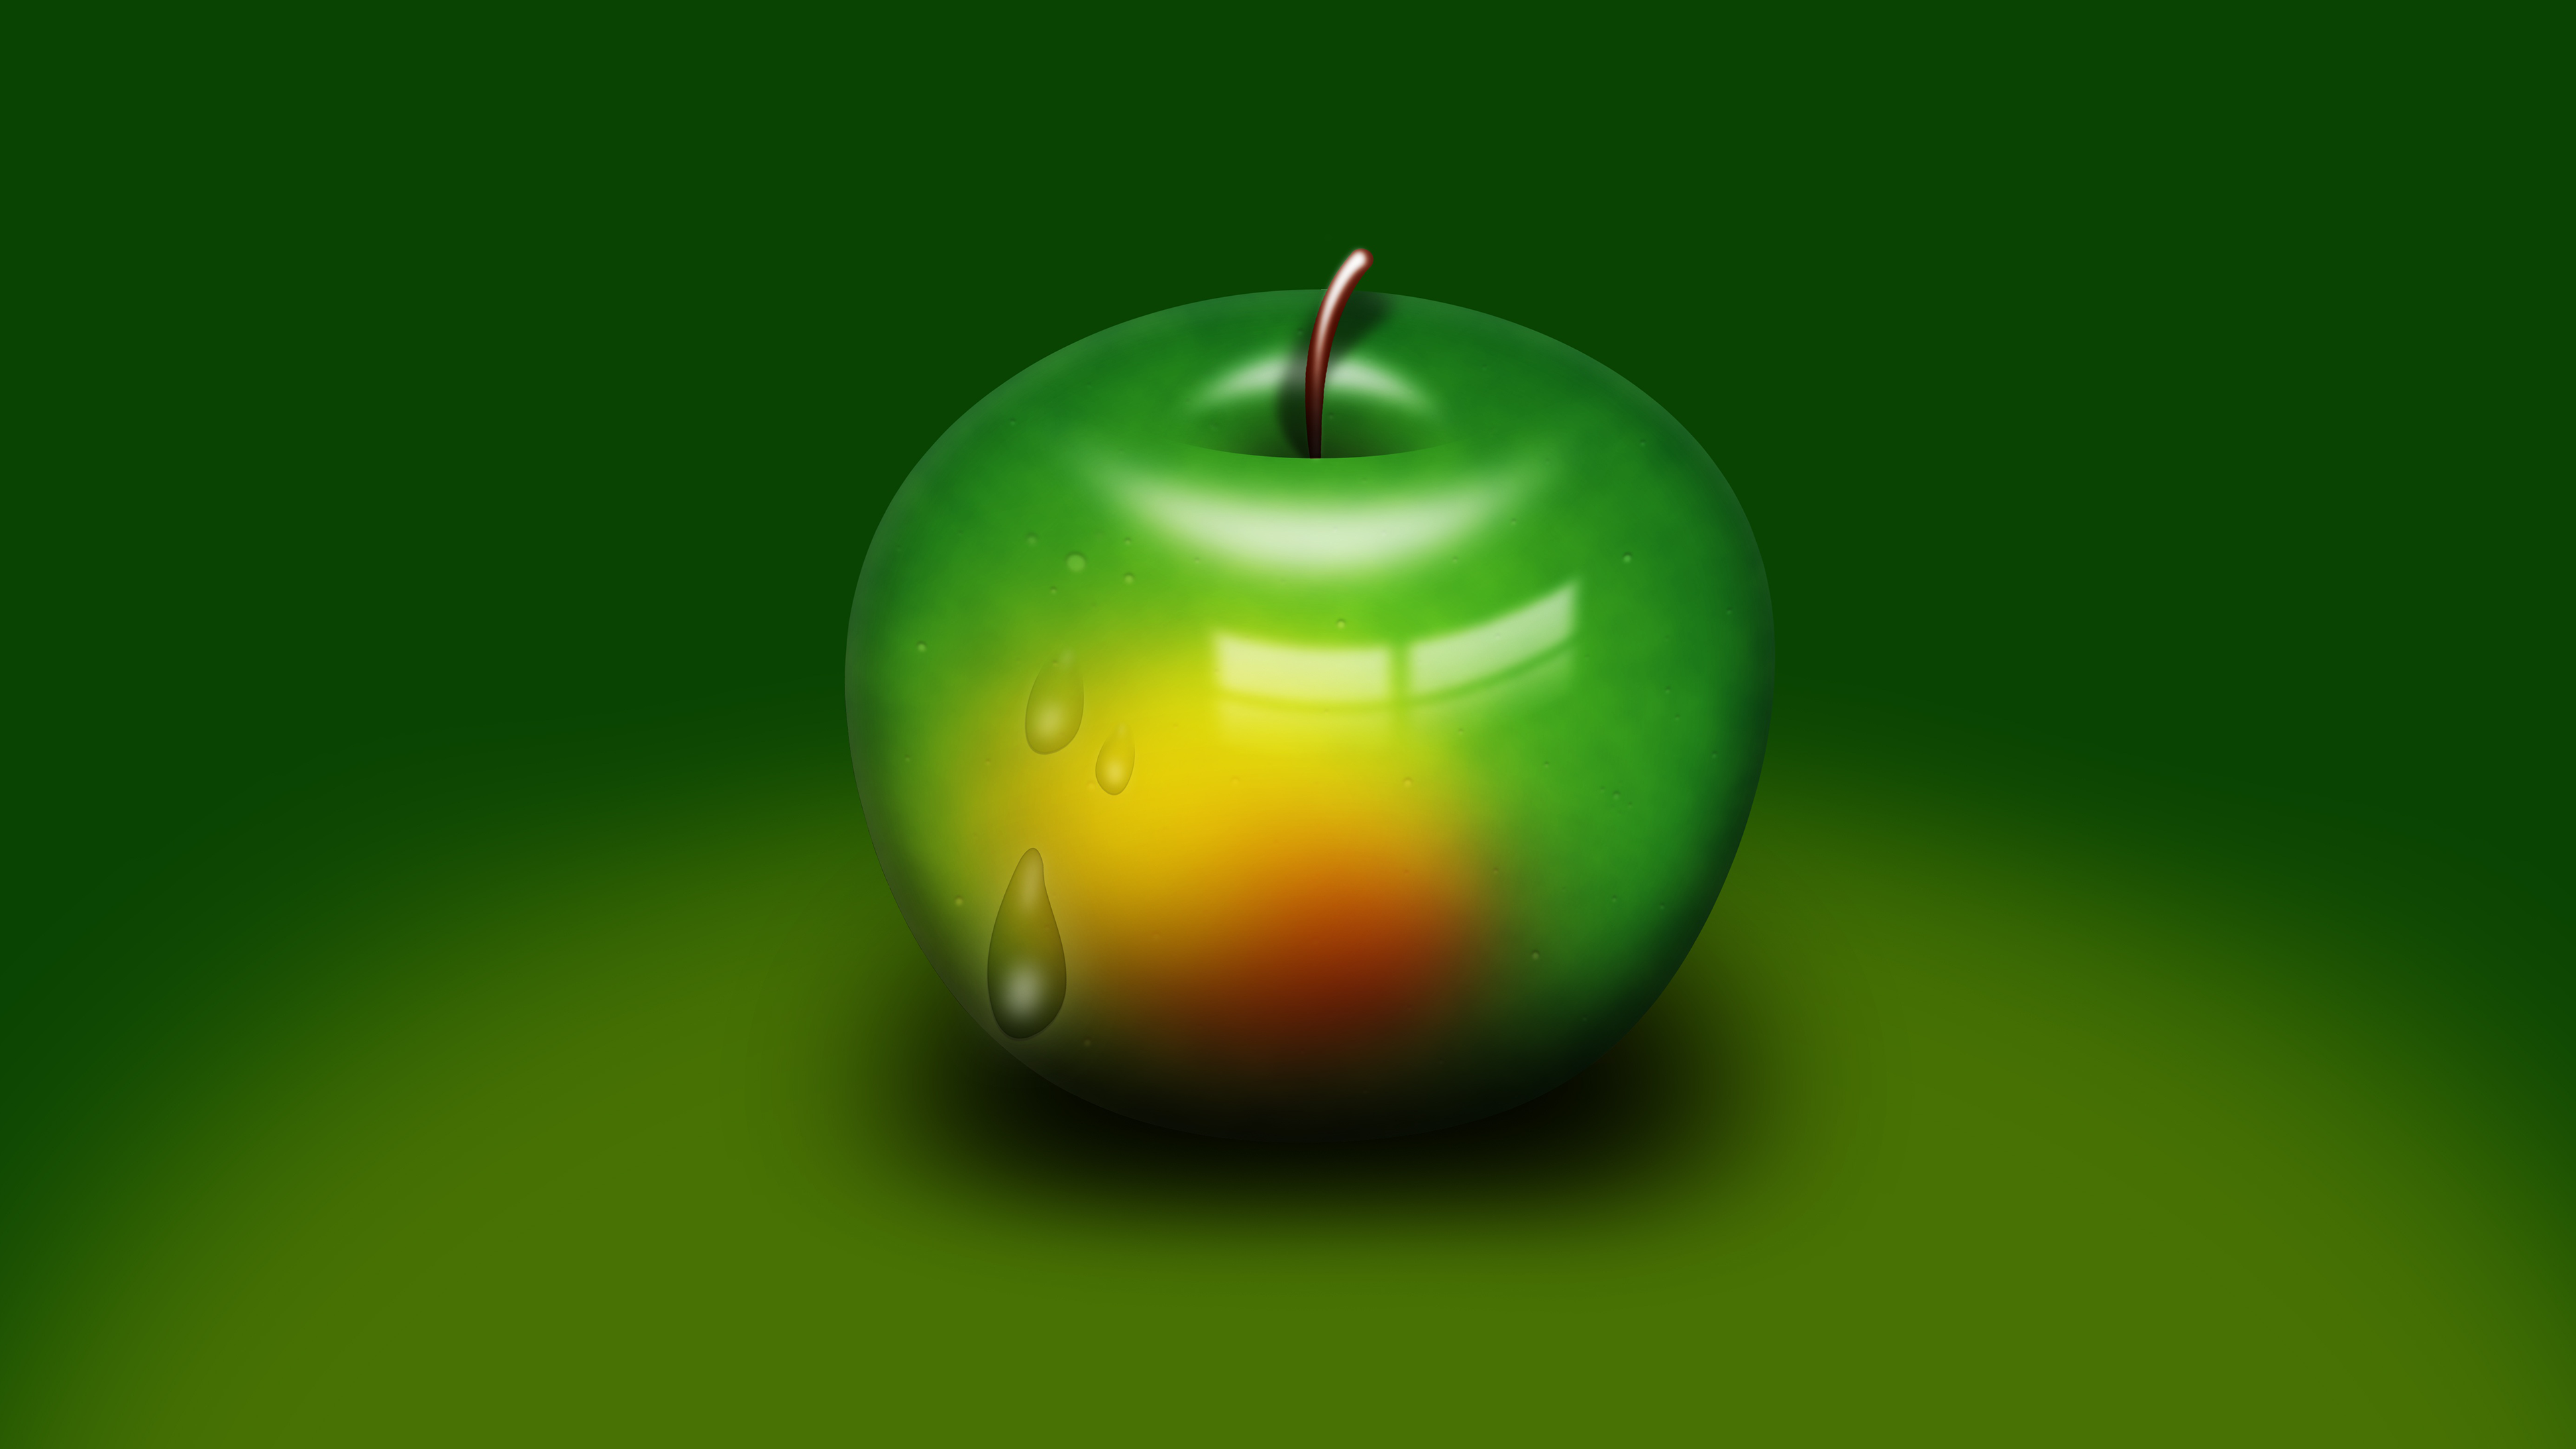 download free hd green apple desktop wallpaper in 4k 0221